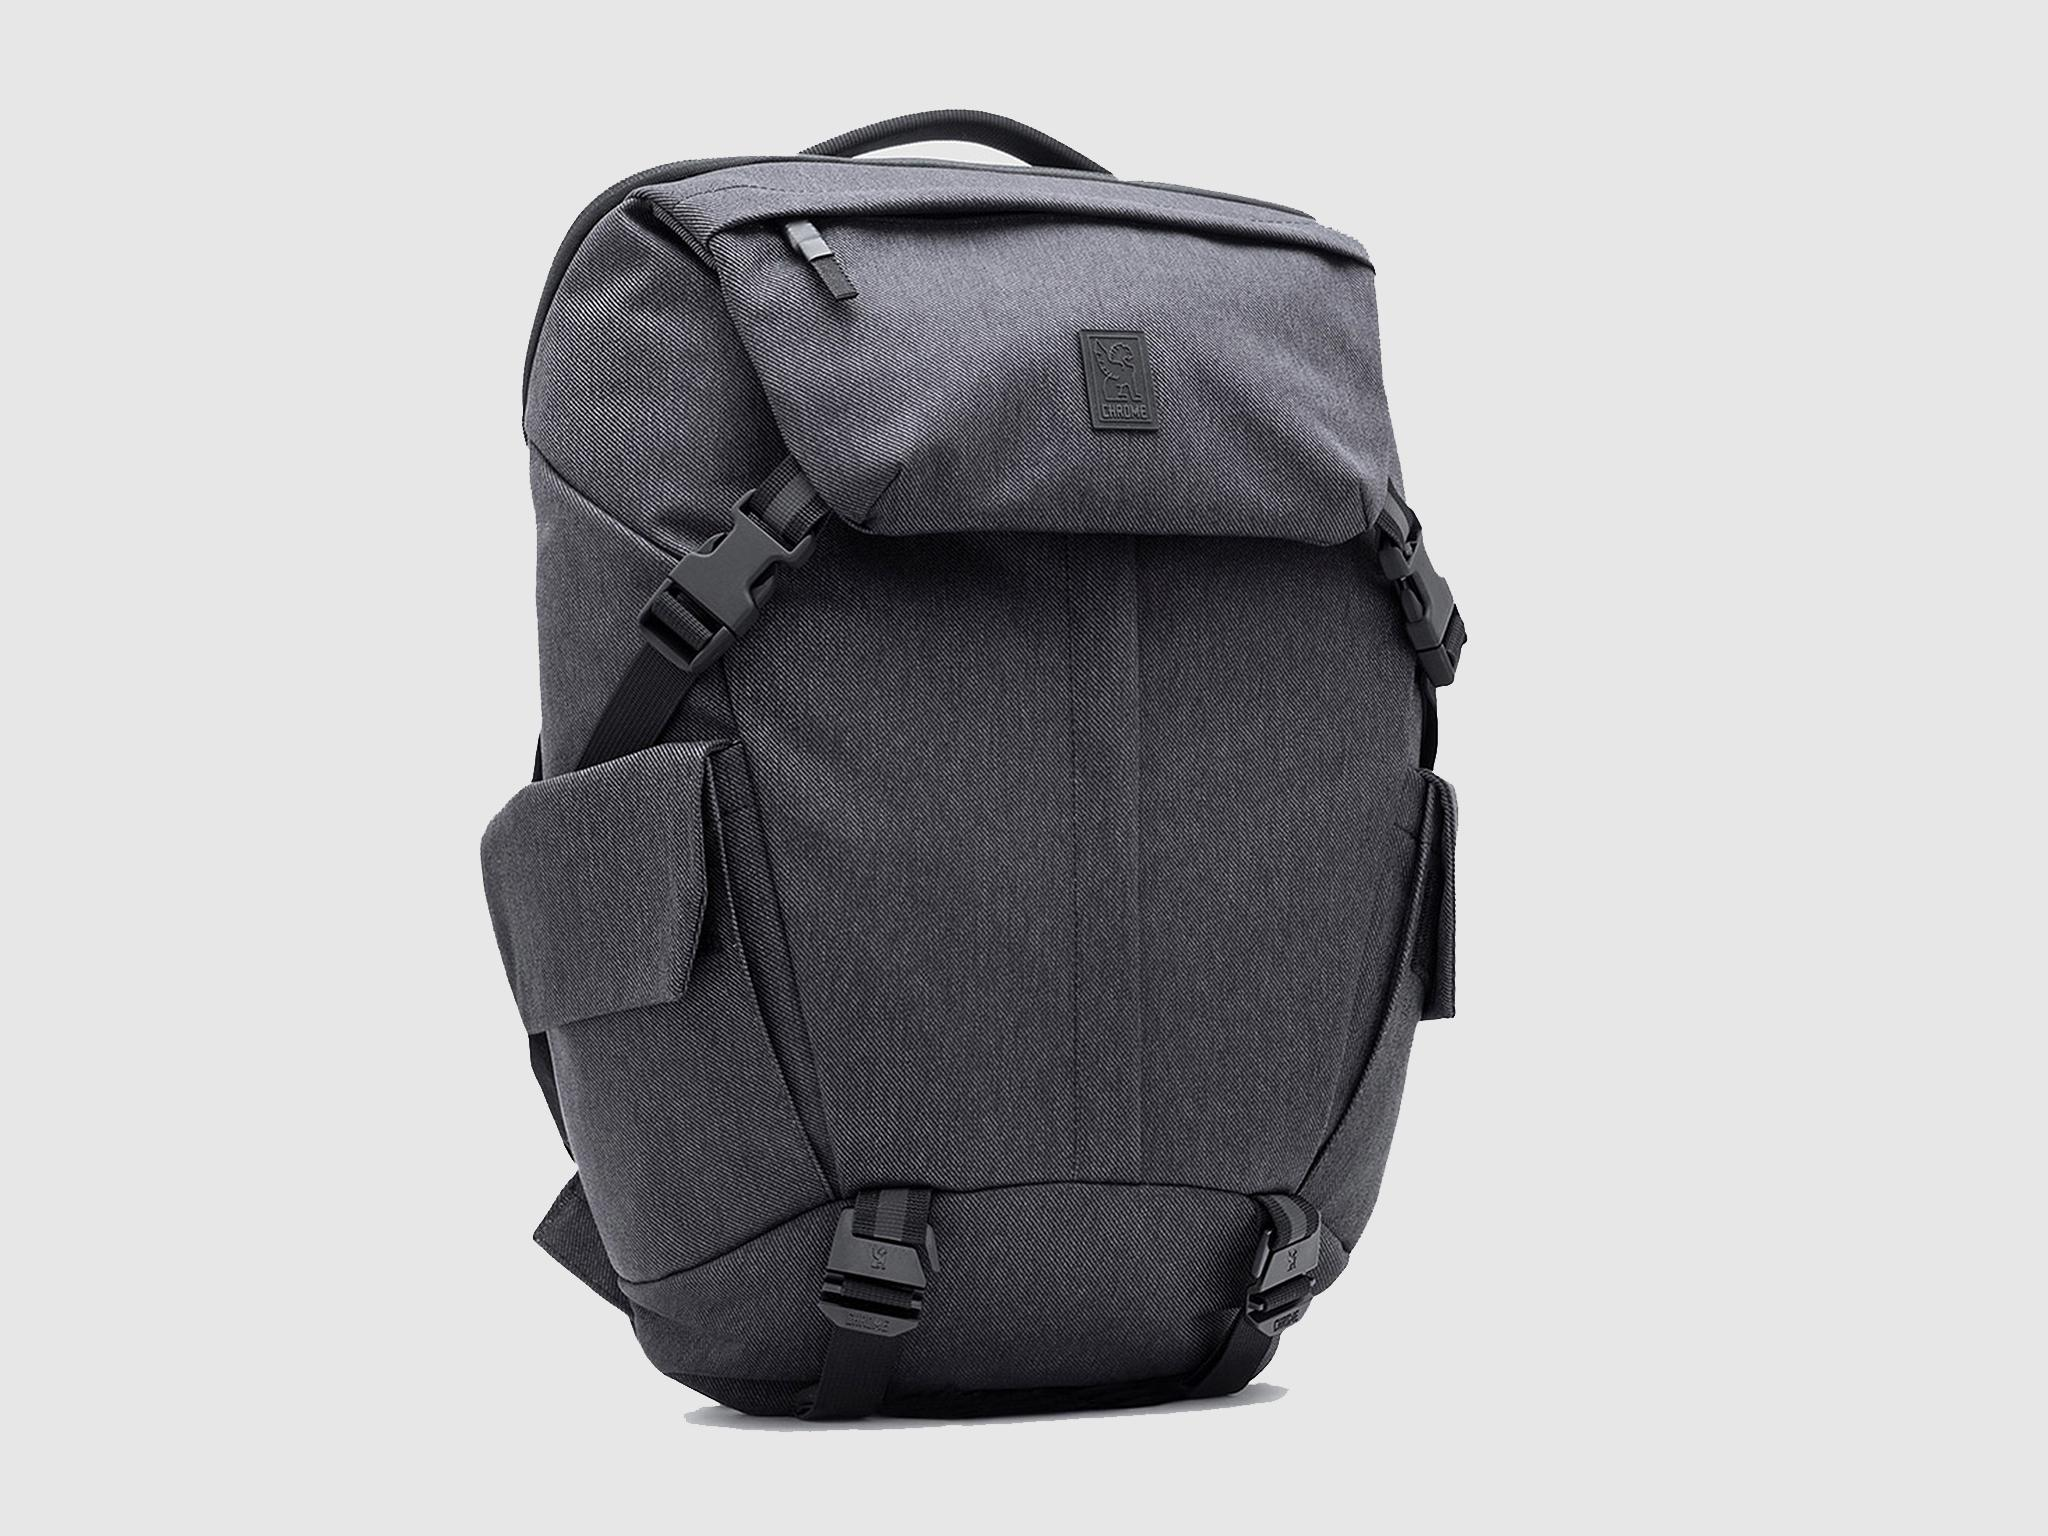 10 Best Cycling Bags The Independent